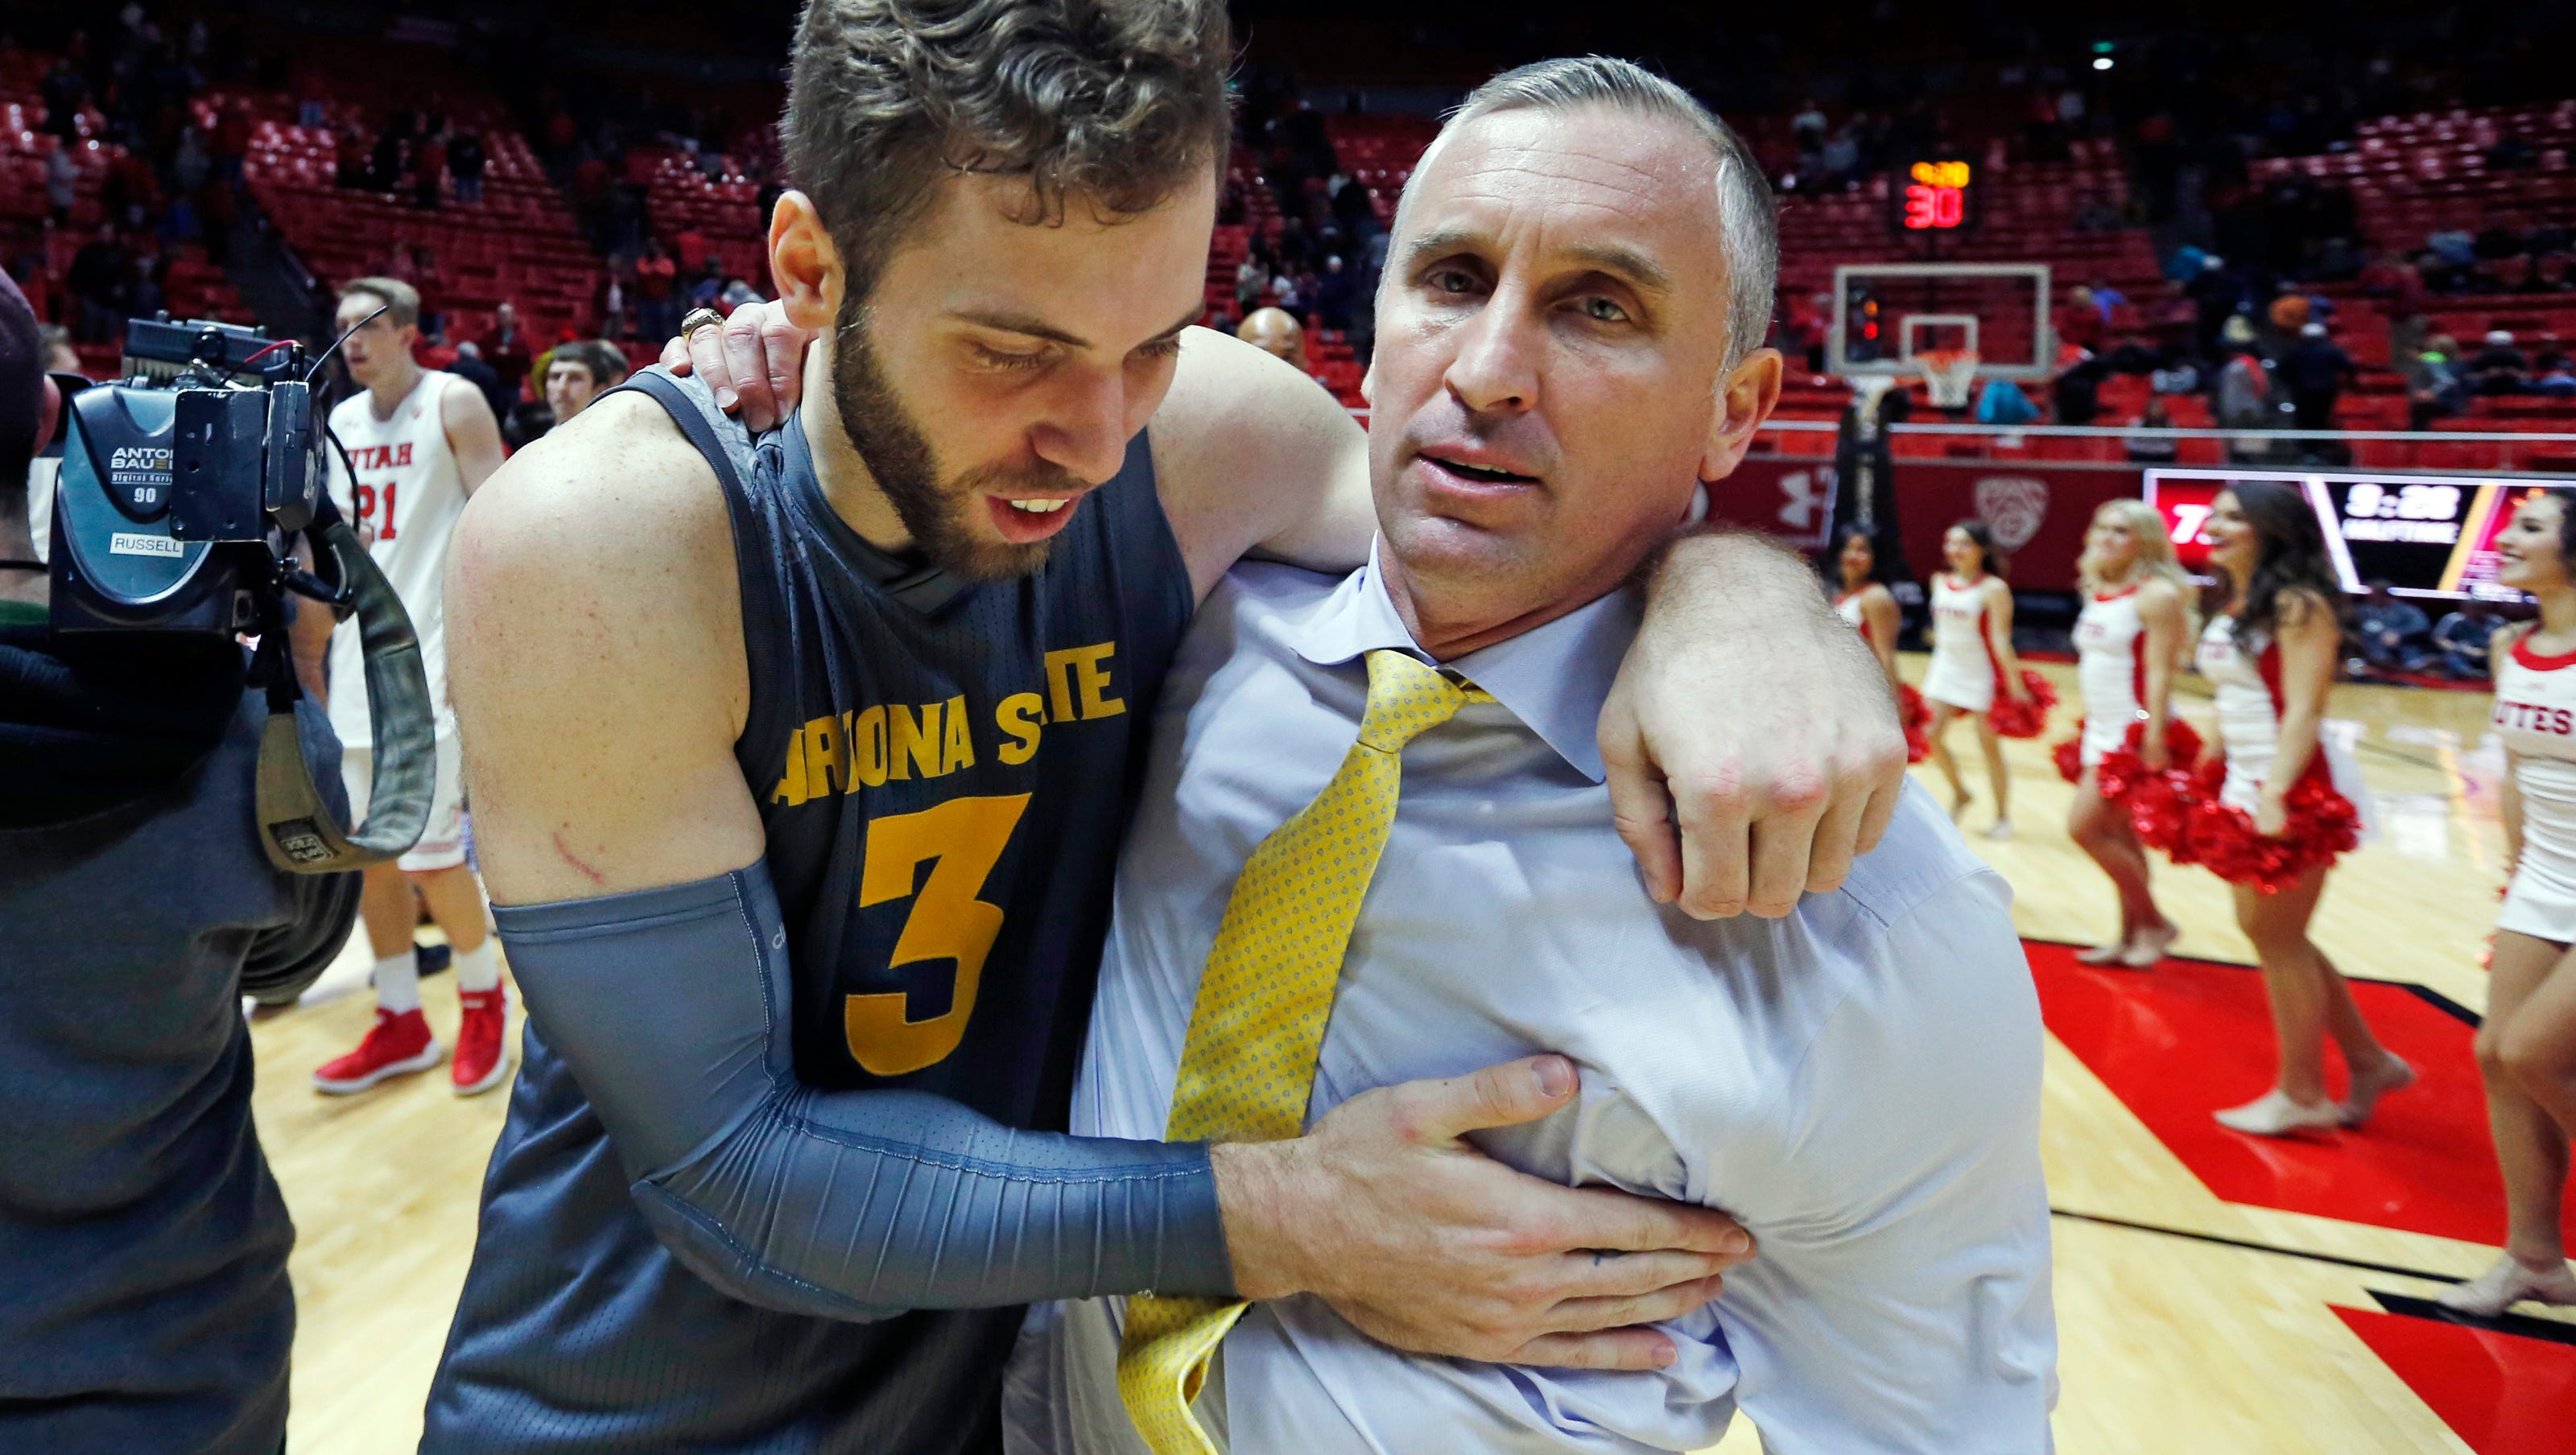 Bobby Hurley Contract Asu Basketball Coach Signs 5 Year Extension